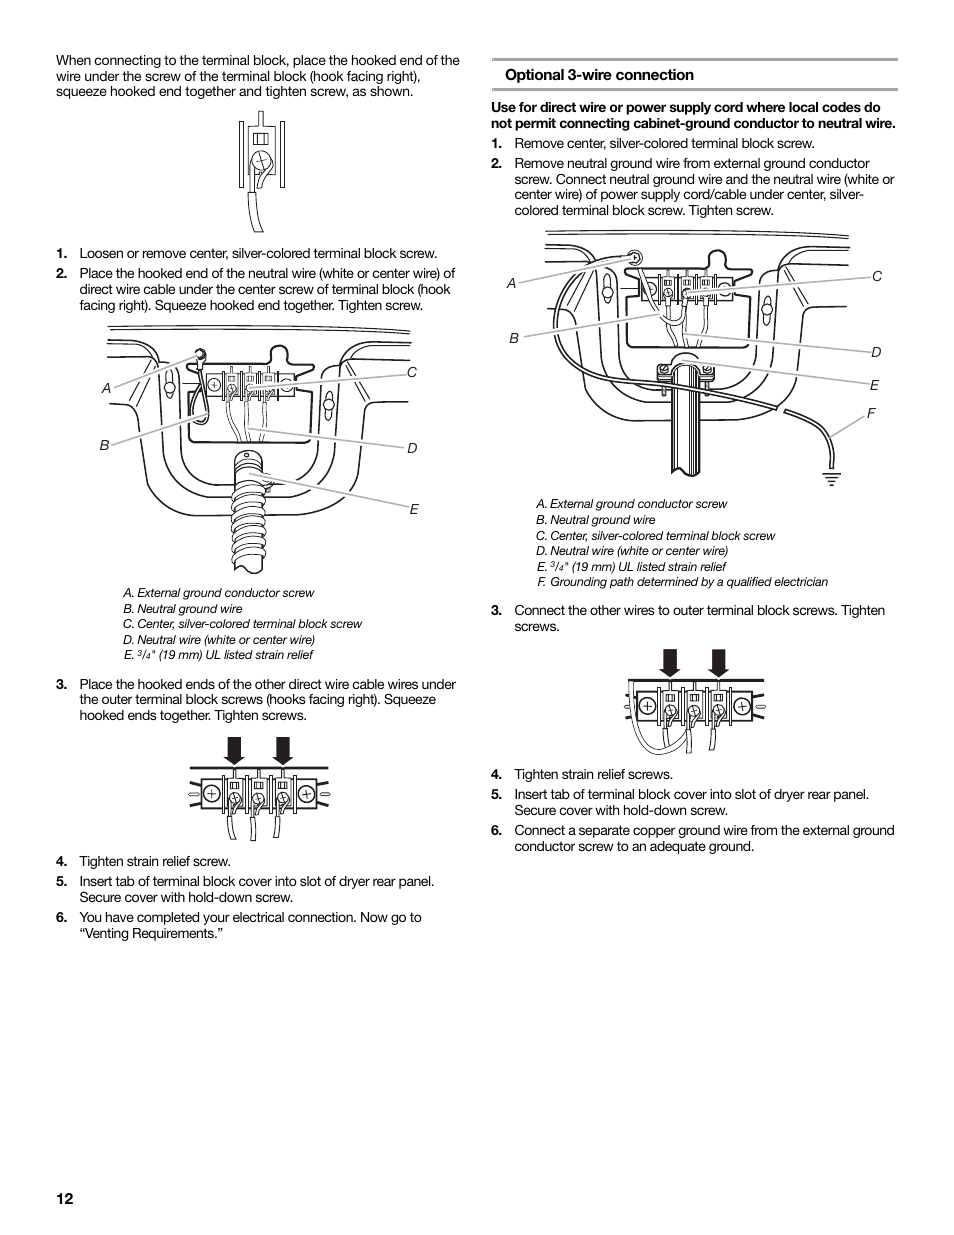 medium resolution of tighten strain relief screw optional 3 wire connection remove electric dryers direct 3wire connection